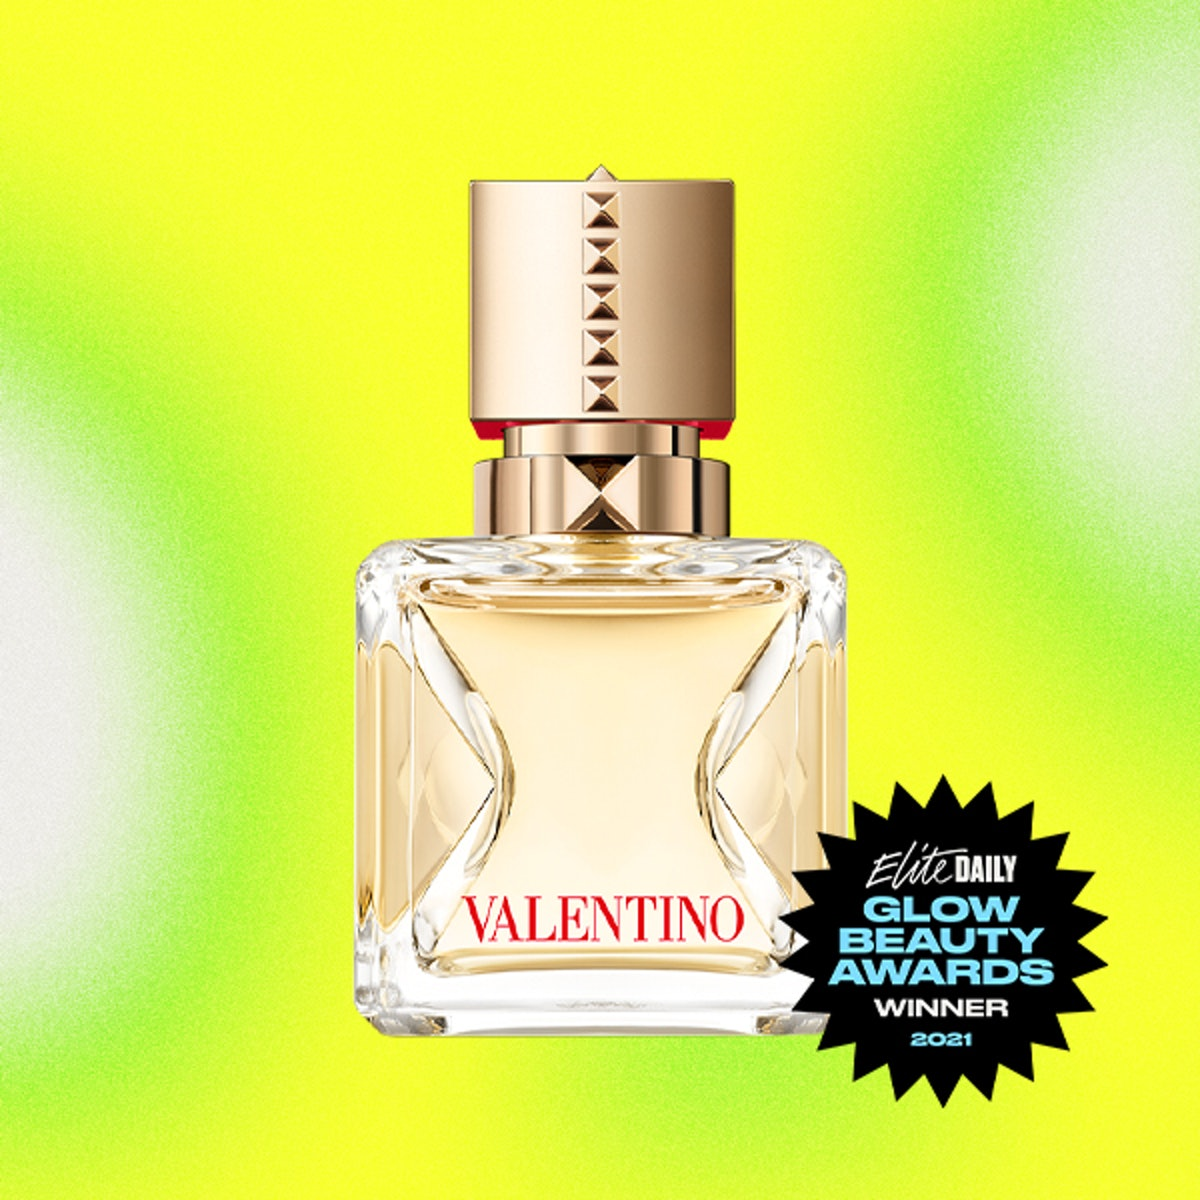 A product shot of Valentino's Voce Viva, the Best Fragrance winner of Elite Daily's 2021 Glow Beauty...